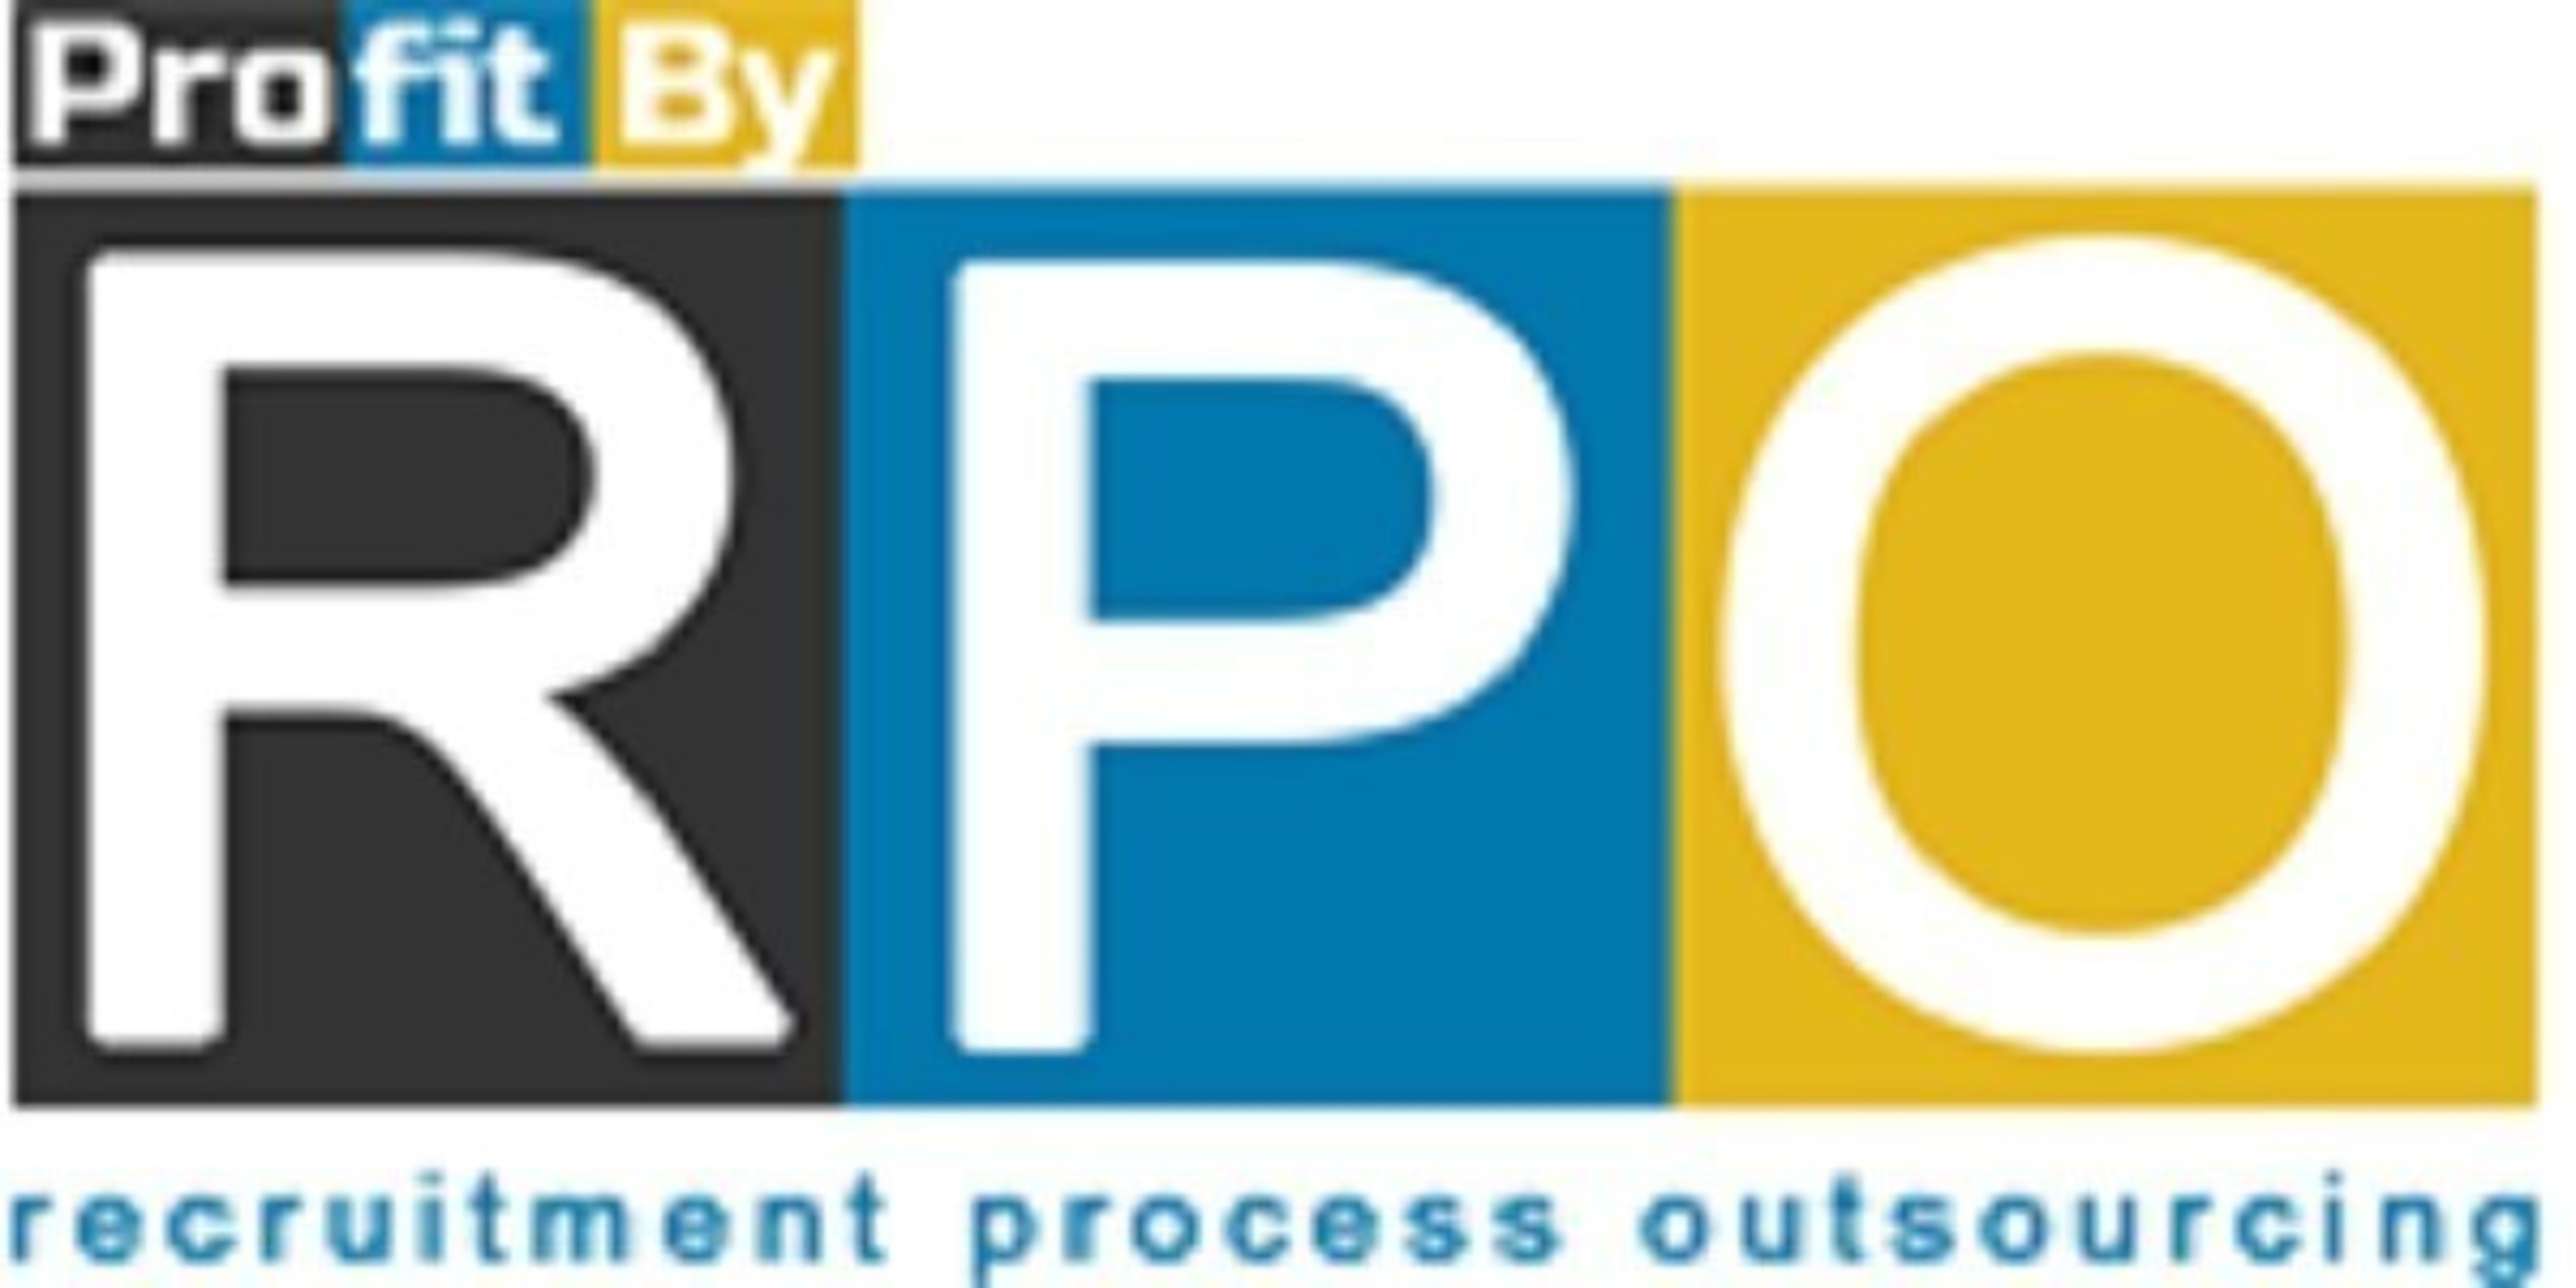 Profit by RPO to ramp up its Strategy to keep pace with recent market developments